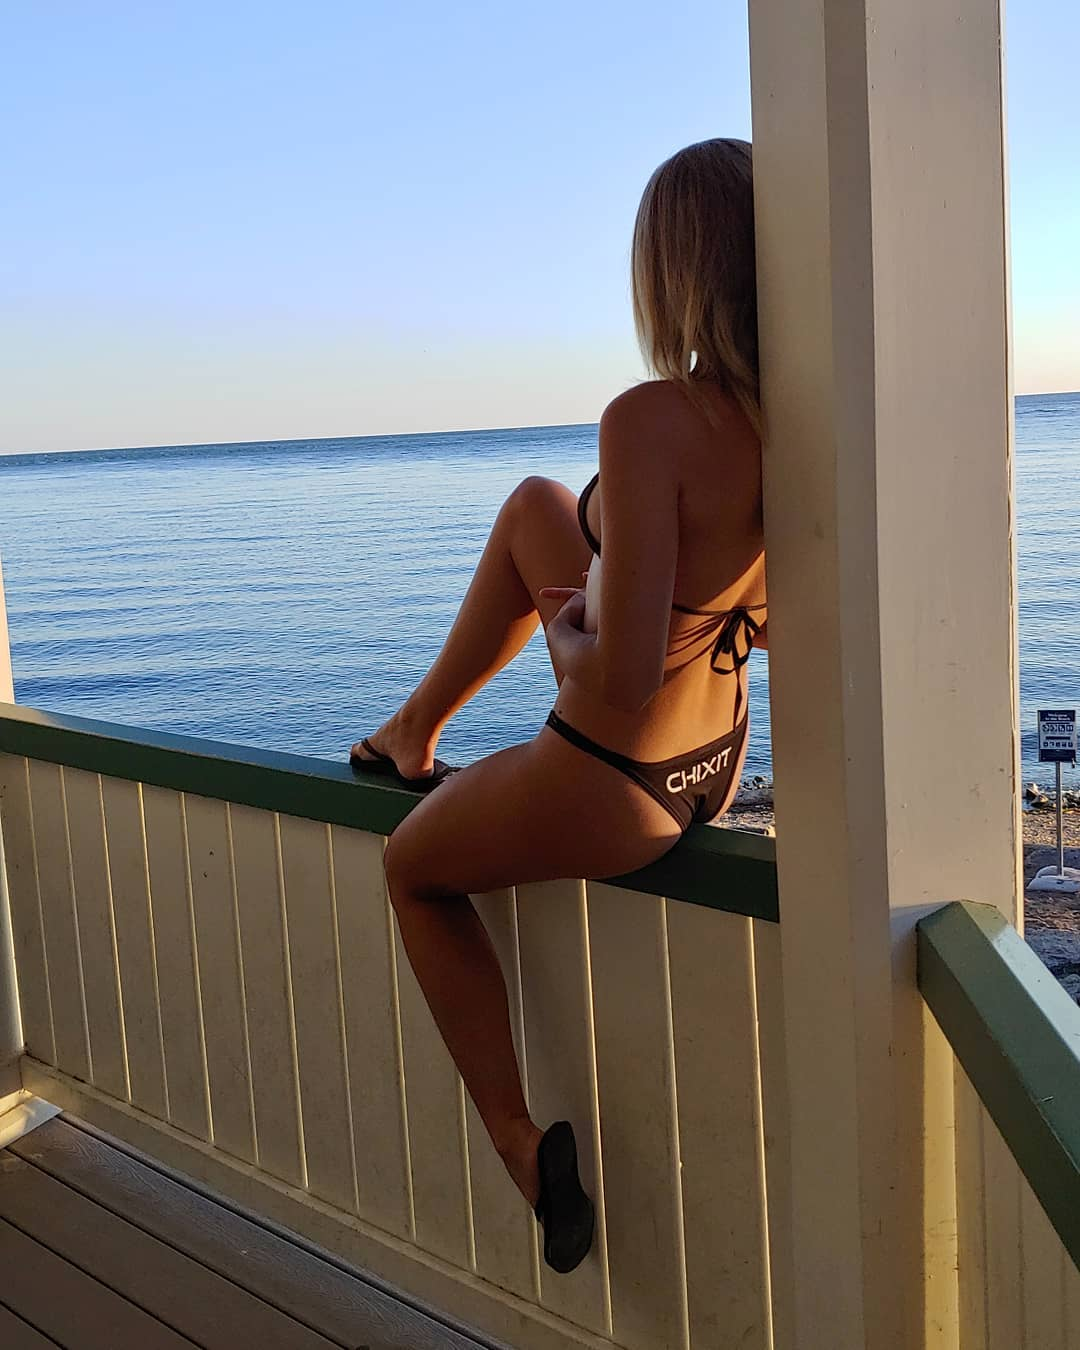 Beautiful young Canadian model McKenzie Lubeck wearing a black Chixit bikini in front of an Ontario Lake showing her sexy legs  looking at the sunset